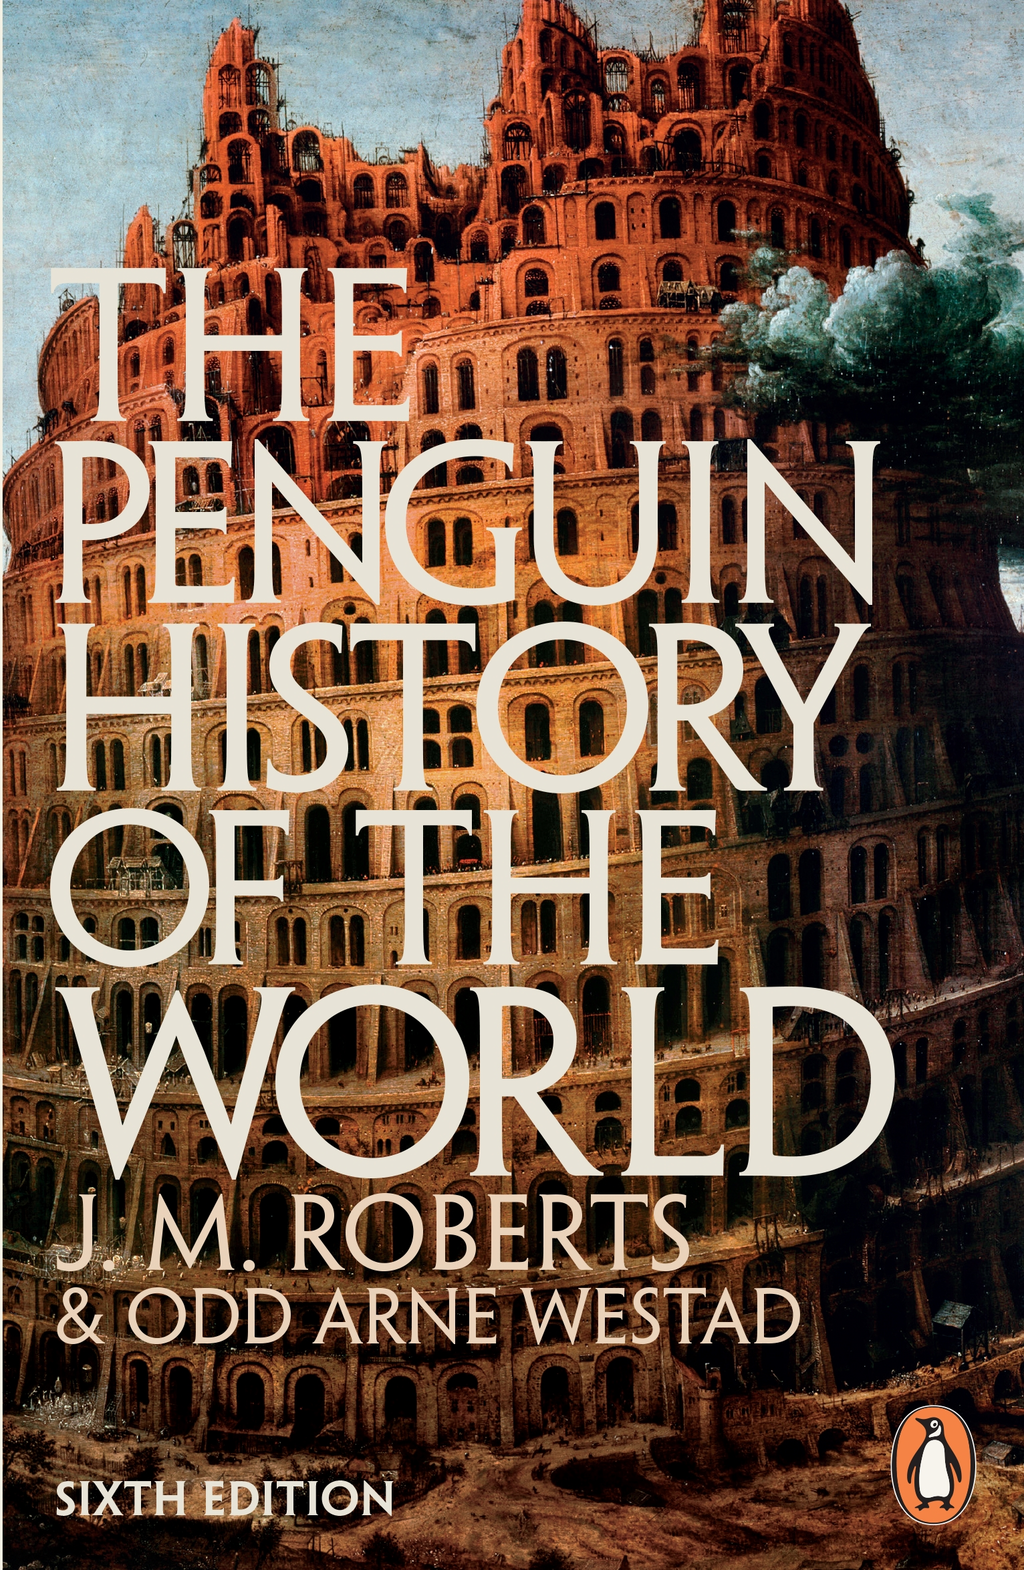 The Penguin History of the World 6th edition